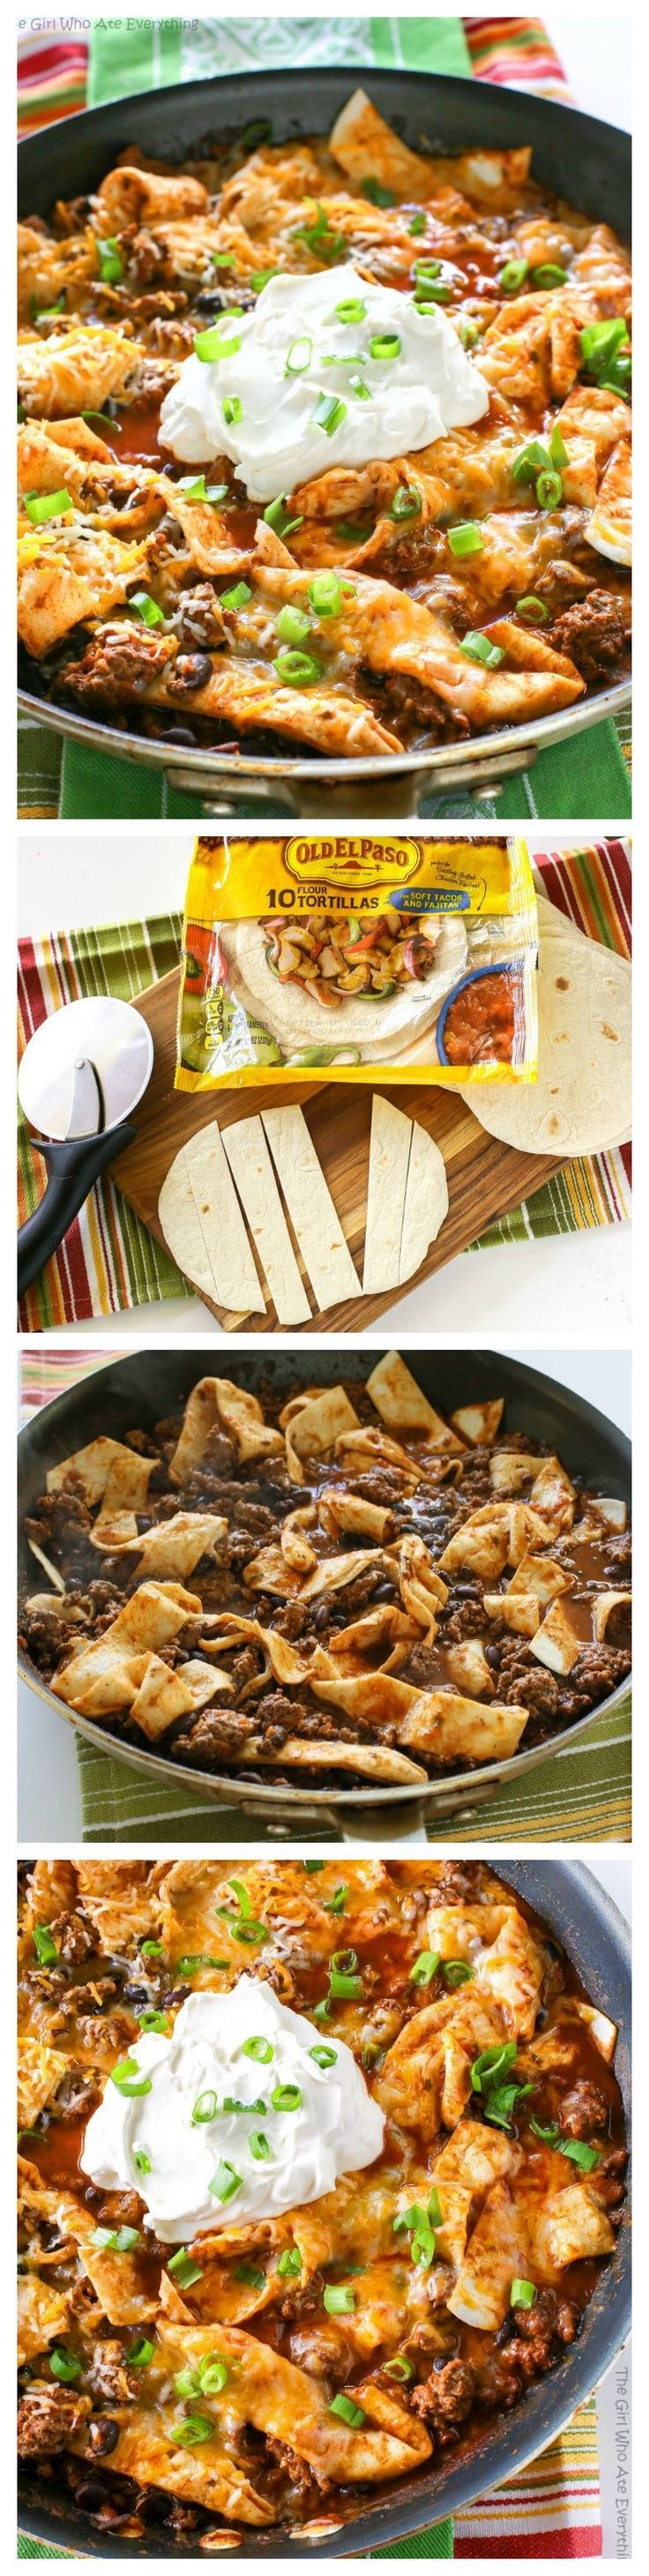 This Easy Beef Burrito Skillet has beef, black beans, salsa, and tortillas all cooked in one skillet. The tortillas turn soft almost like a dumpling. This one pan tasty dish is done in less than 20 minutes. the-girl-who-ate-everything.com